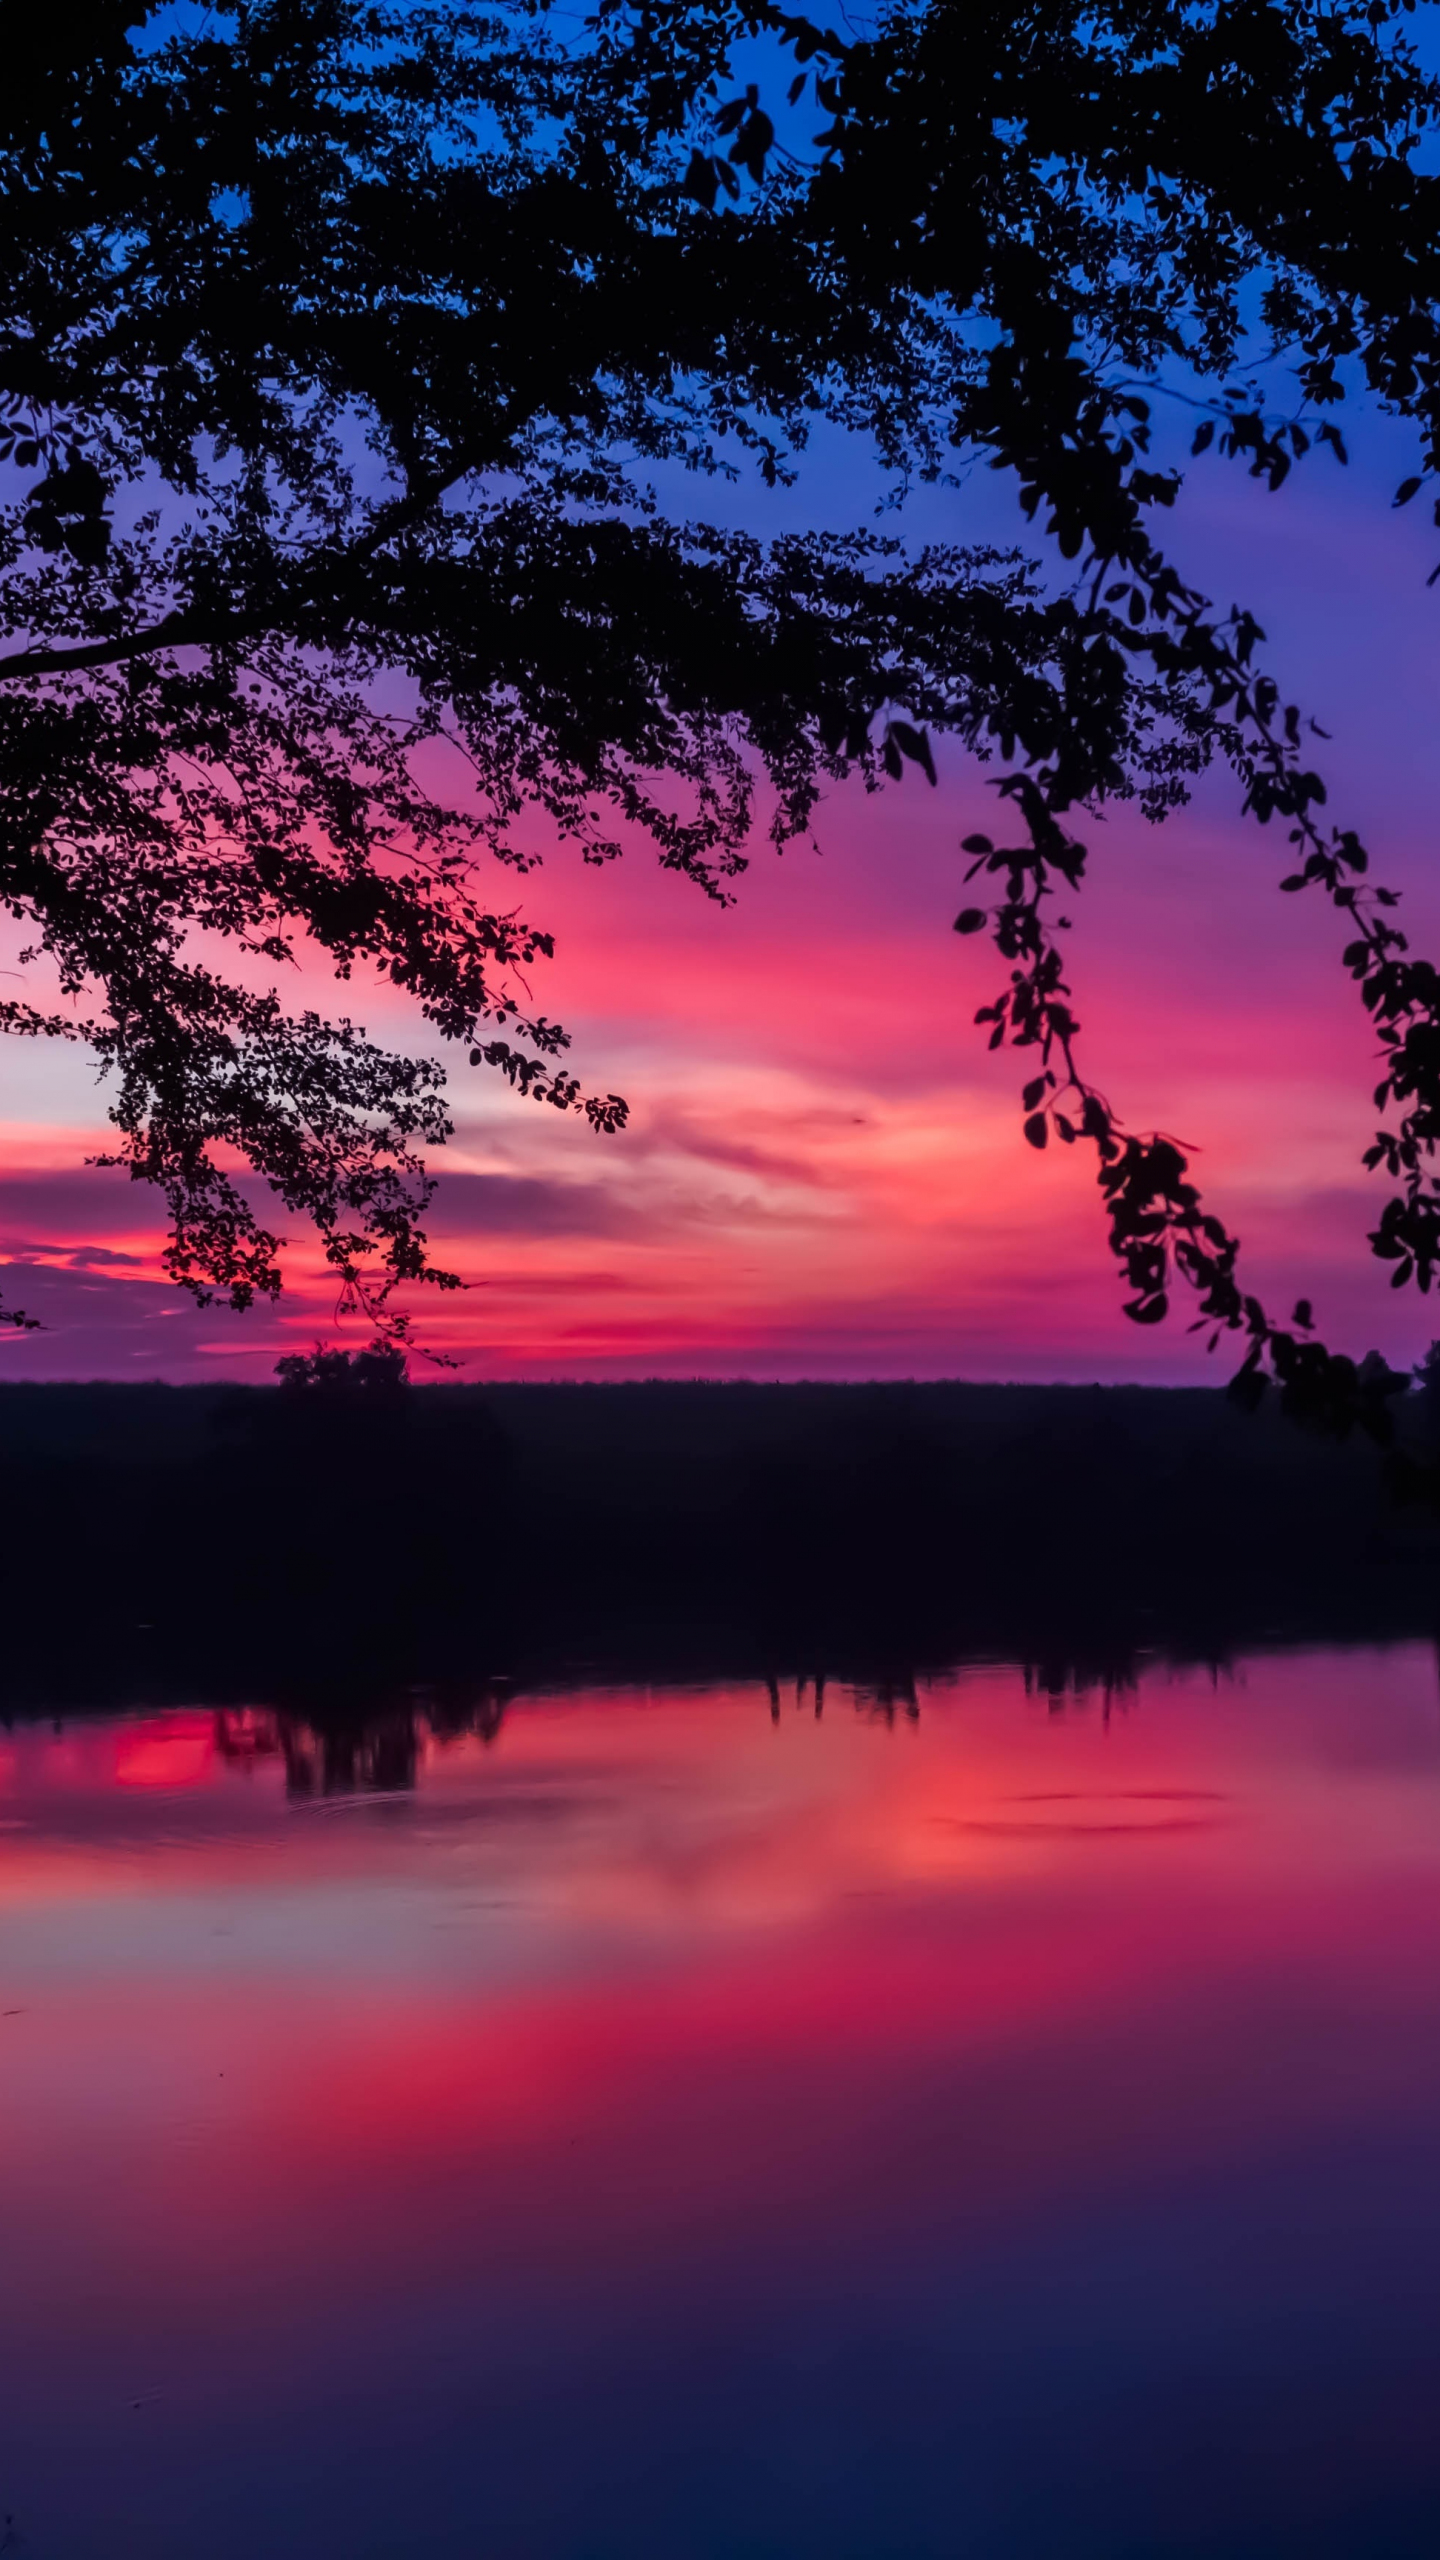 Download 1440x2560 Wallpaper Twilight Sunset Colorful Sky Lake Nature Qhd Samsung Galaxy S6 S7 Edge Note Lg G4 1440x2560 Hd Image Background 6012